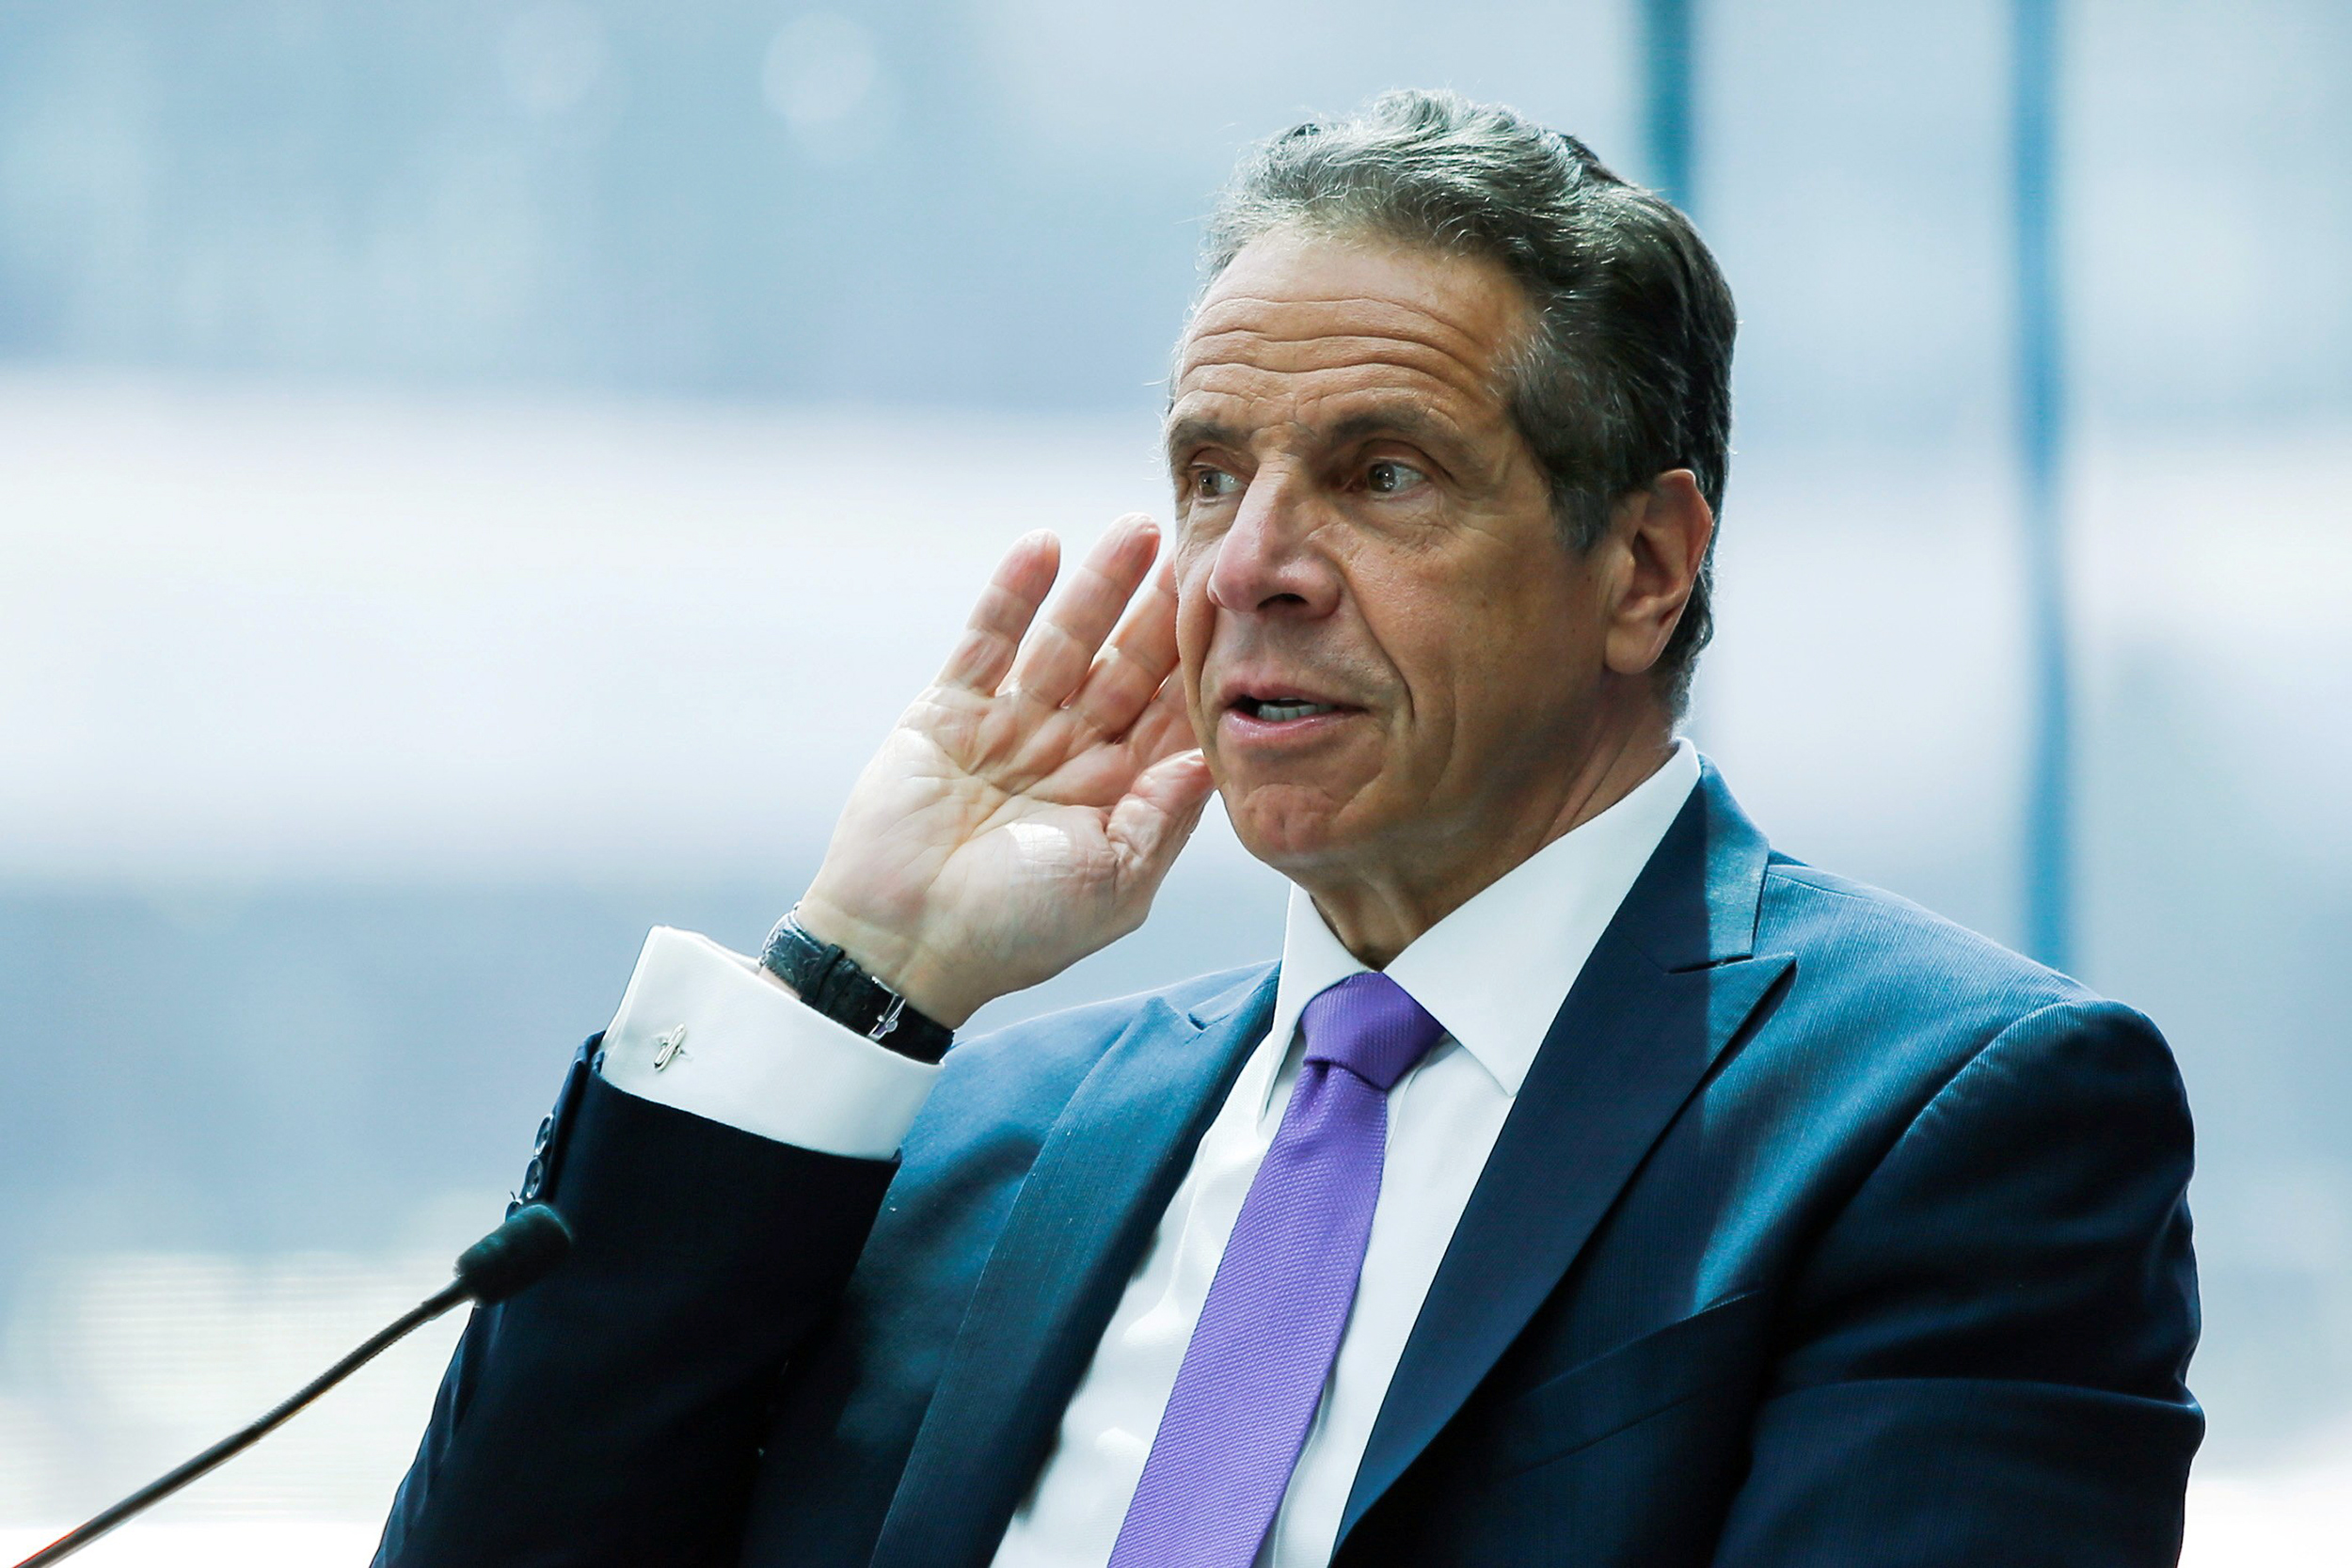 The many obstacles in the way of criminal charges for Gov. Cuomo